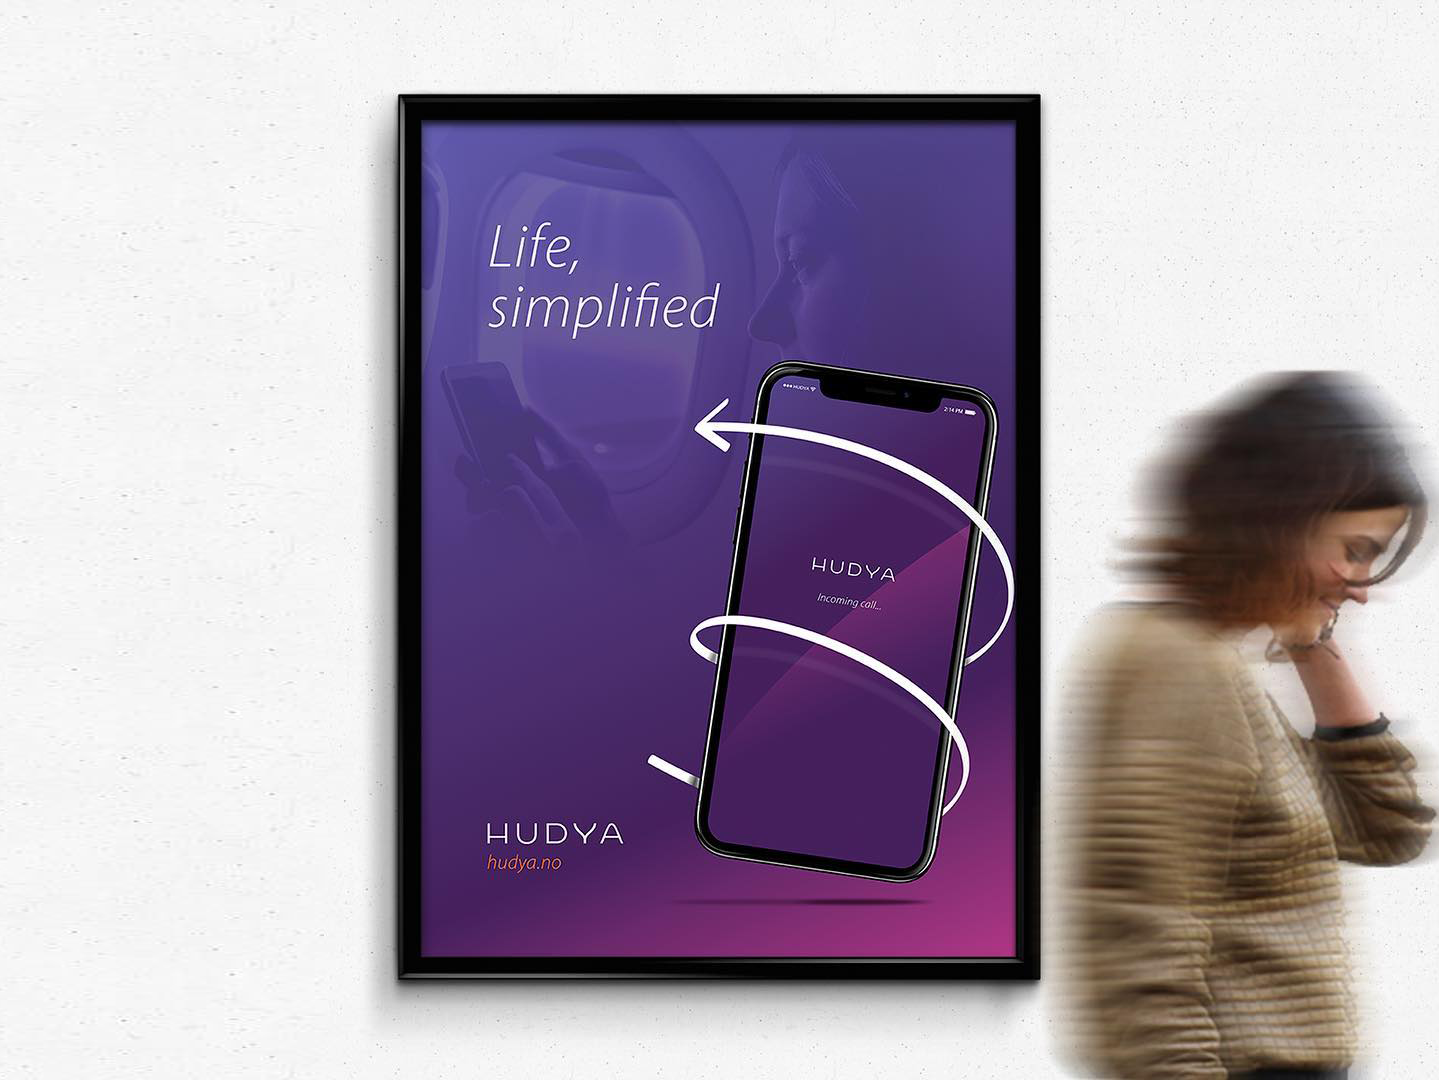 Hudya office posters product hudya norway print design brand identity branding insurance mobile services renders poster print